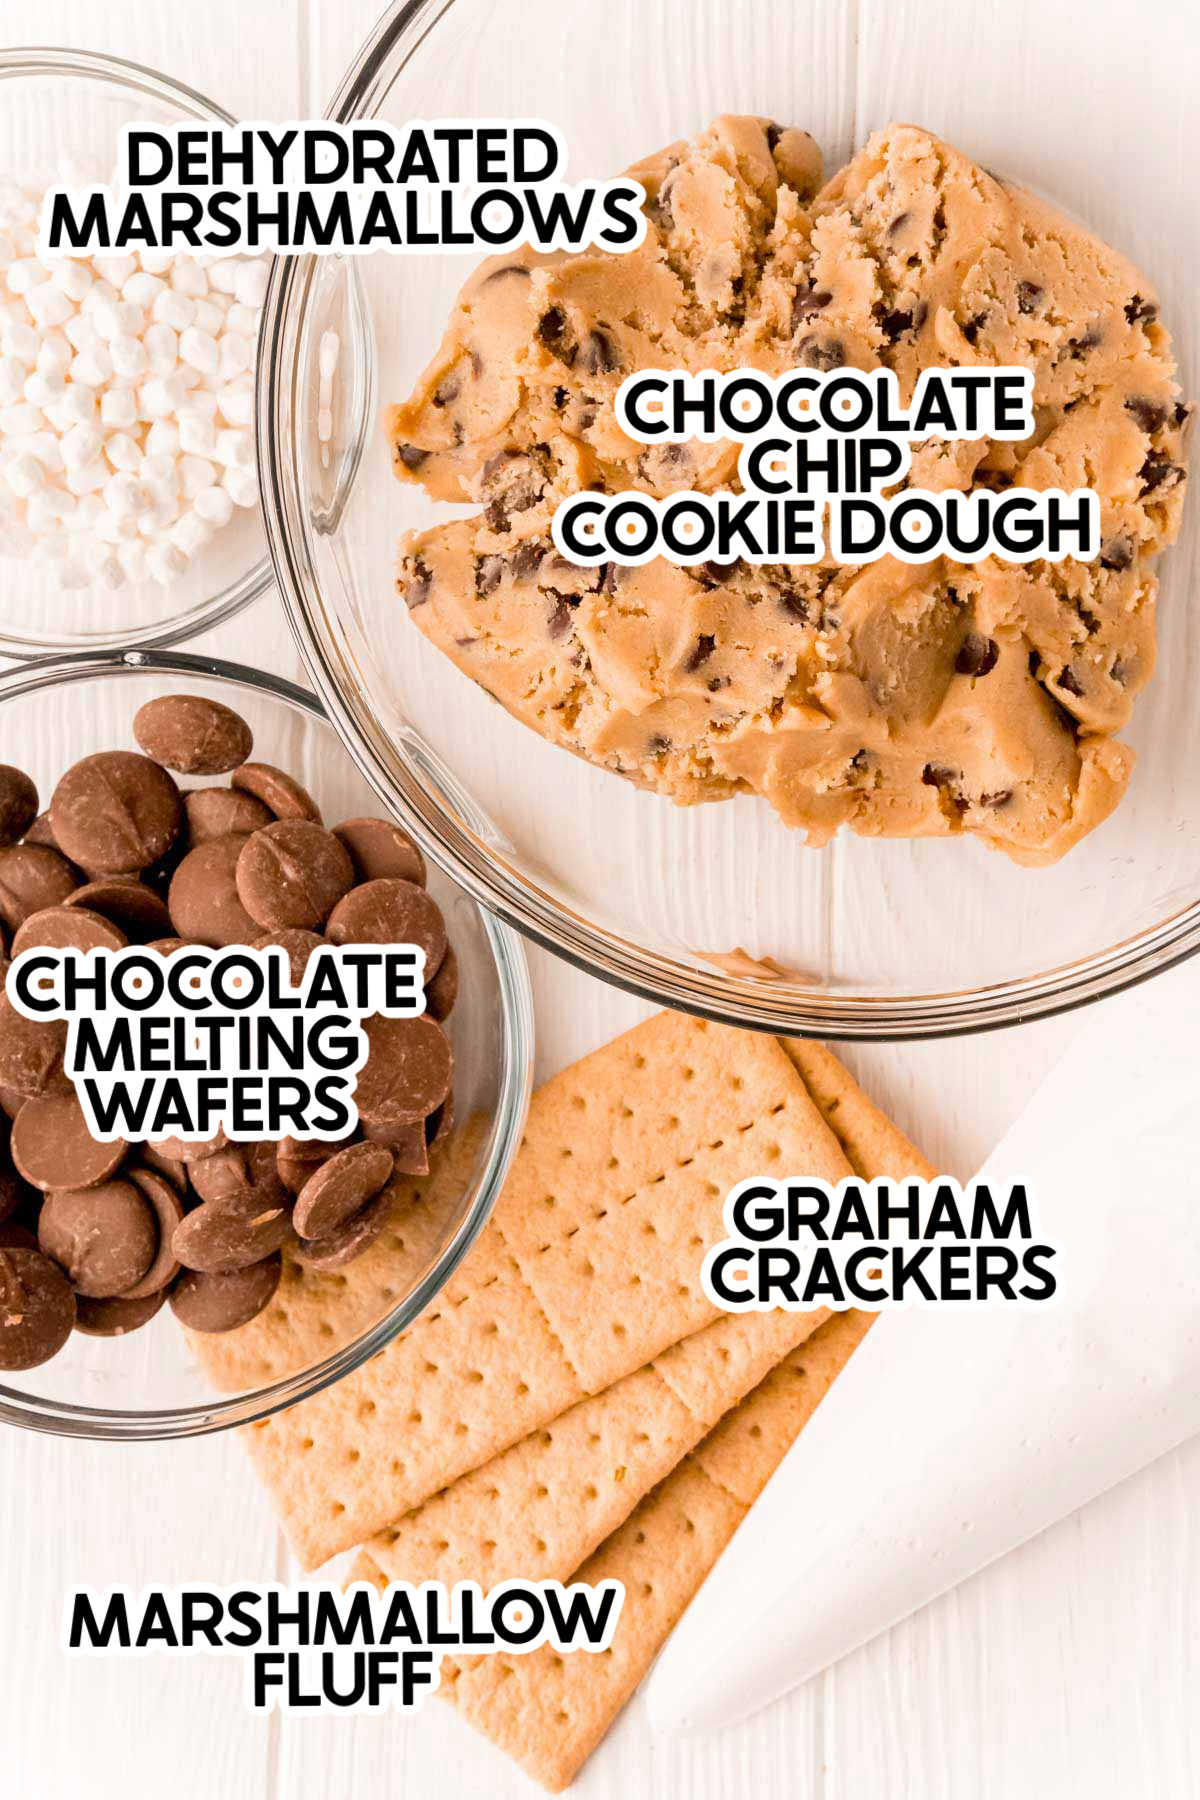 ingredients for s'mores cookies with labels